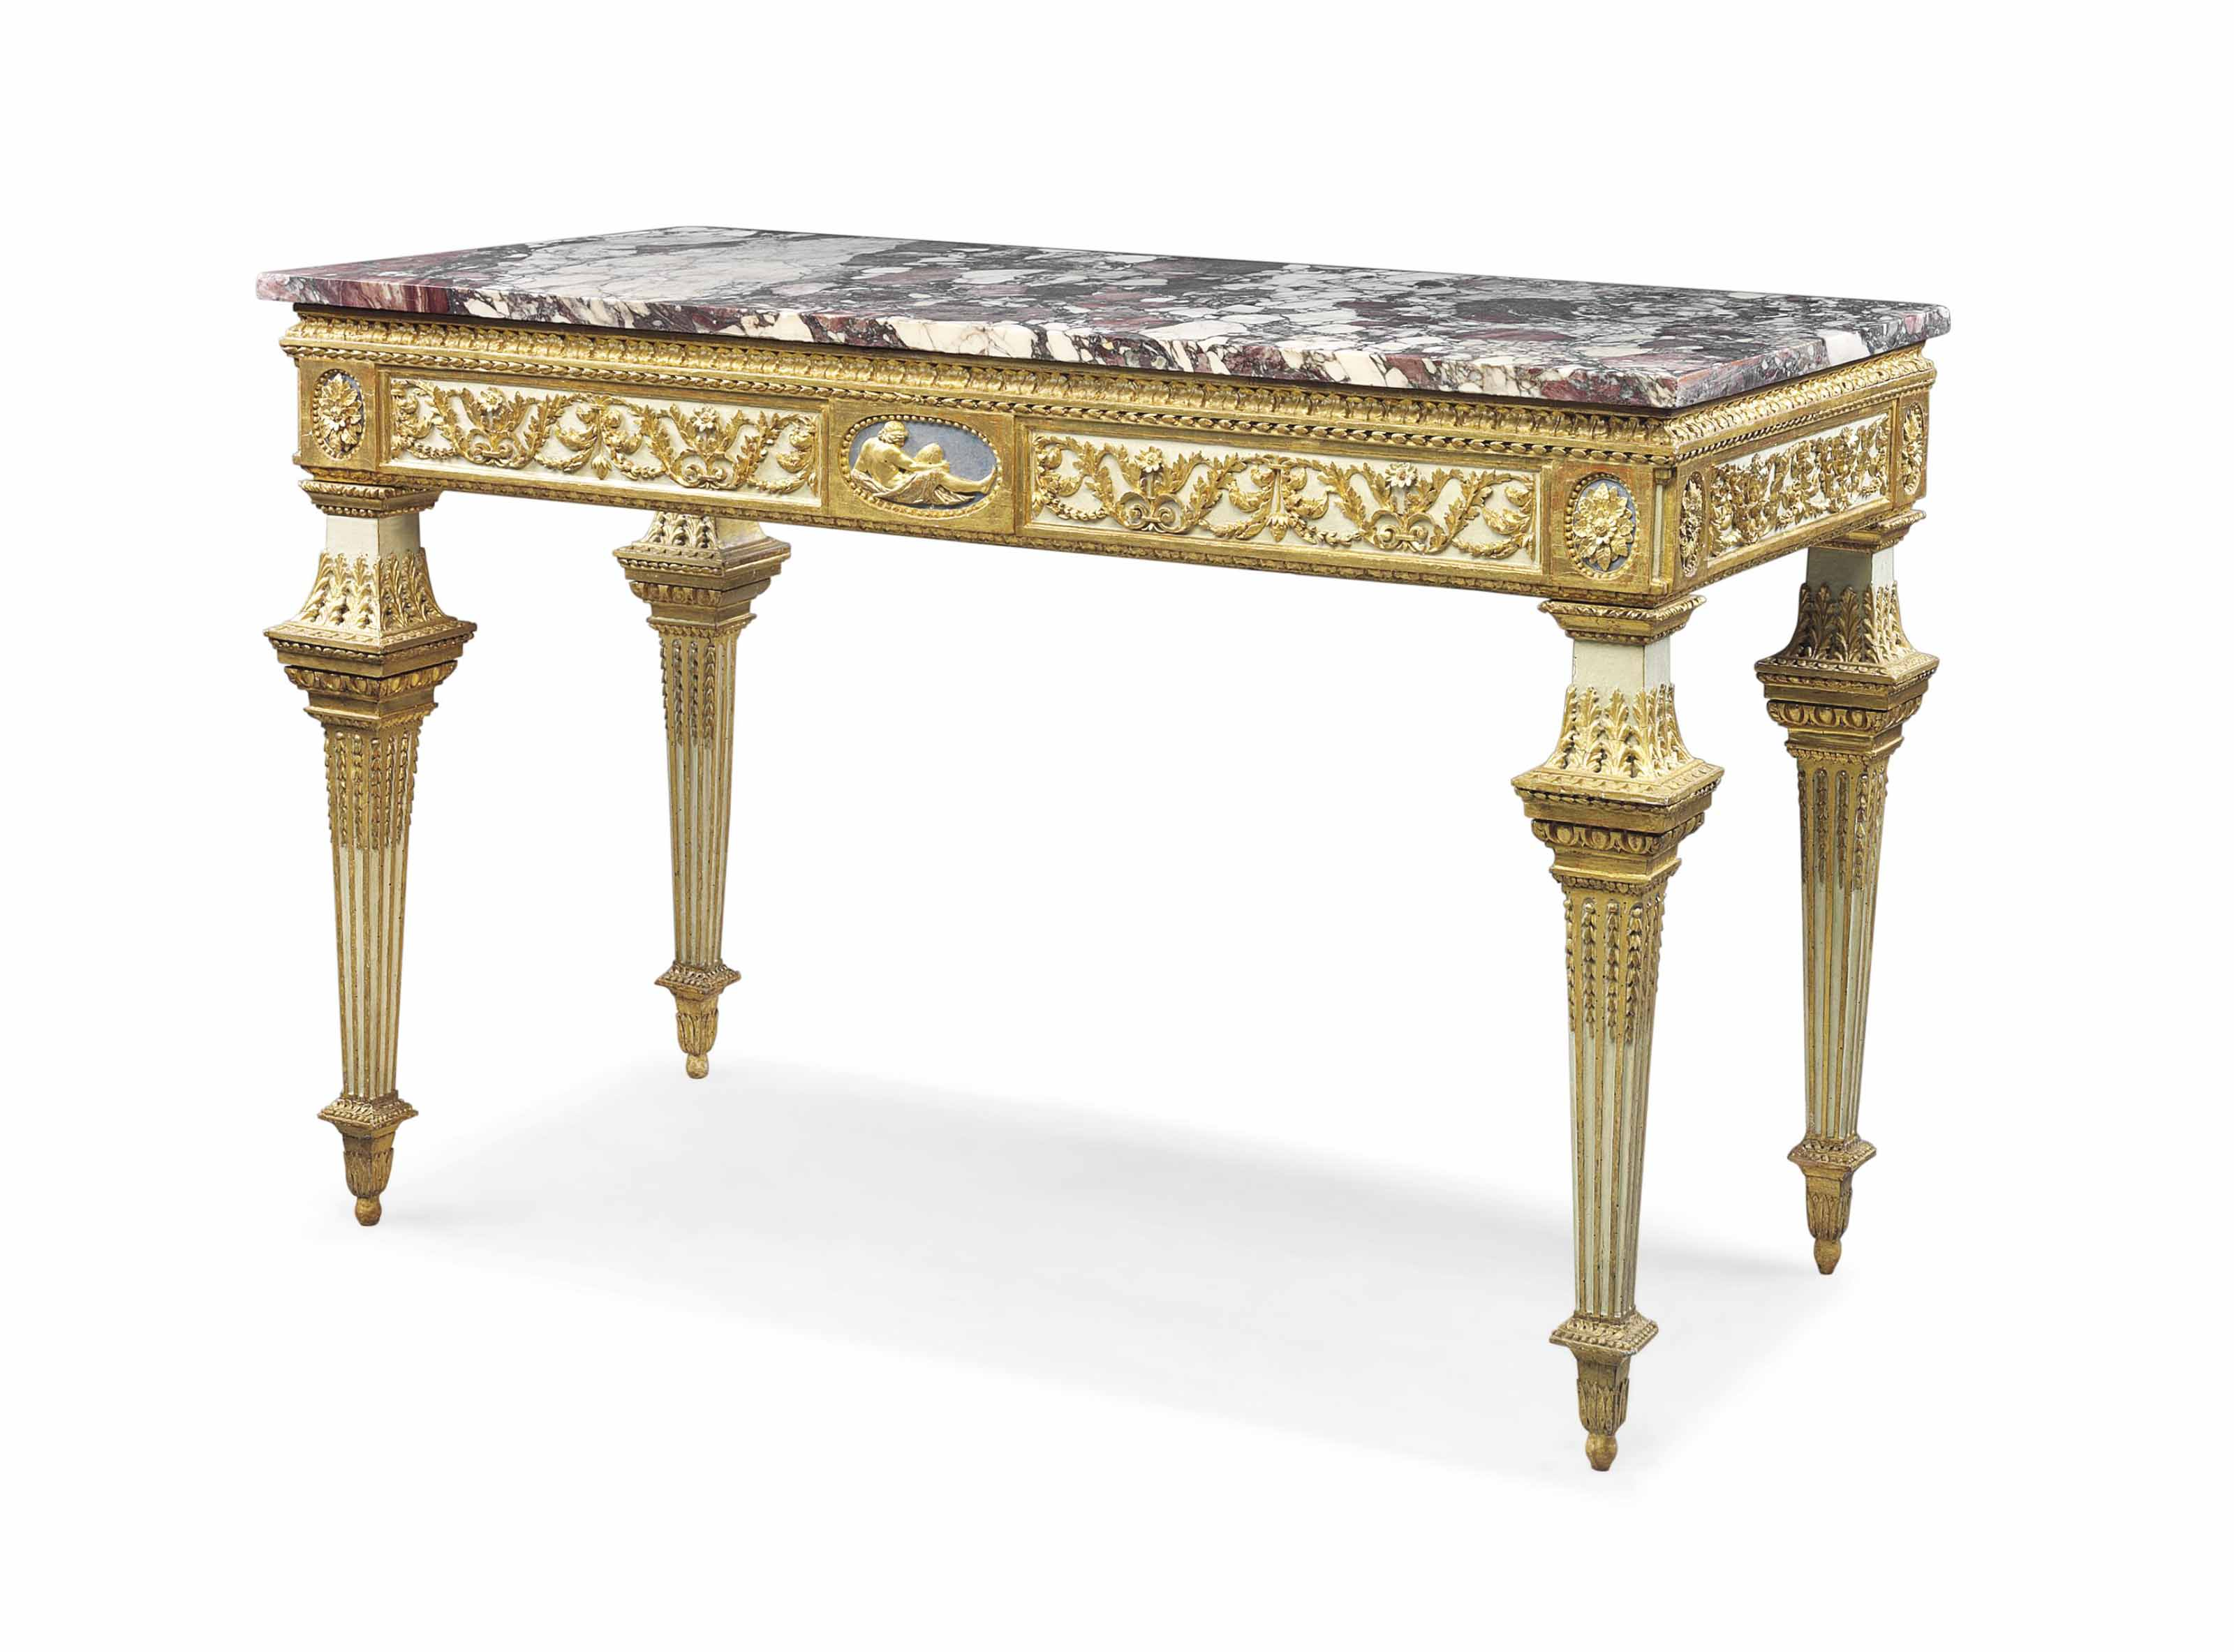 AN NORTH ITALIAN PARCEL-GILT A